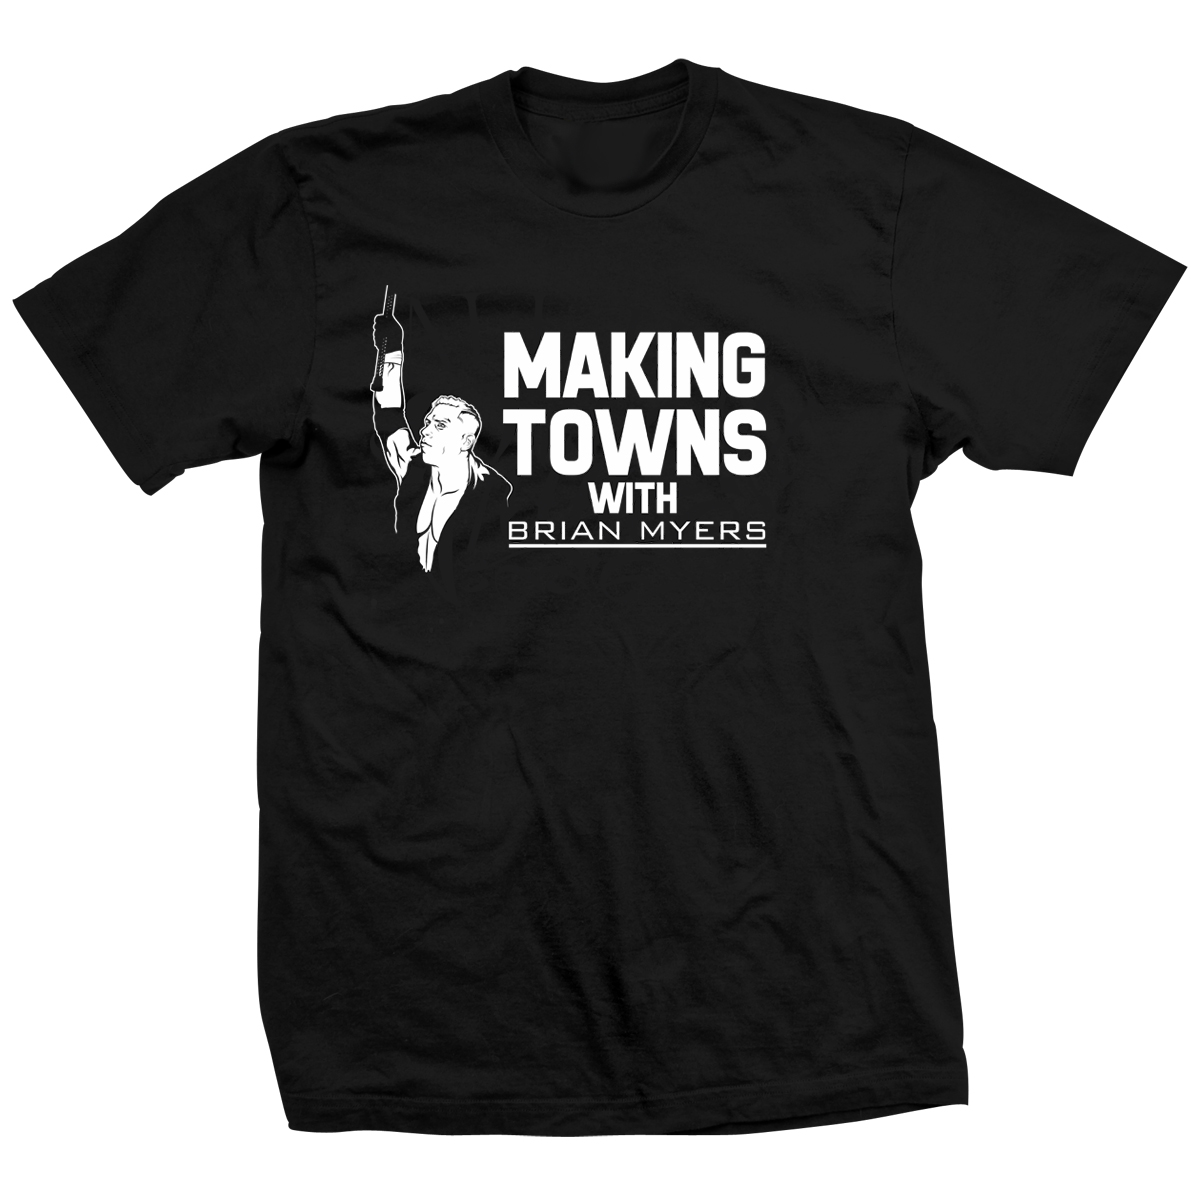 Making Towns T-shirt